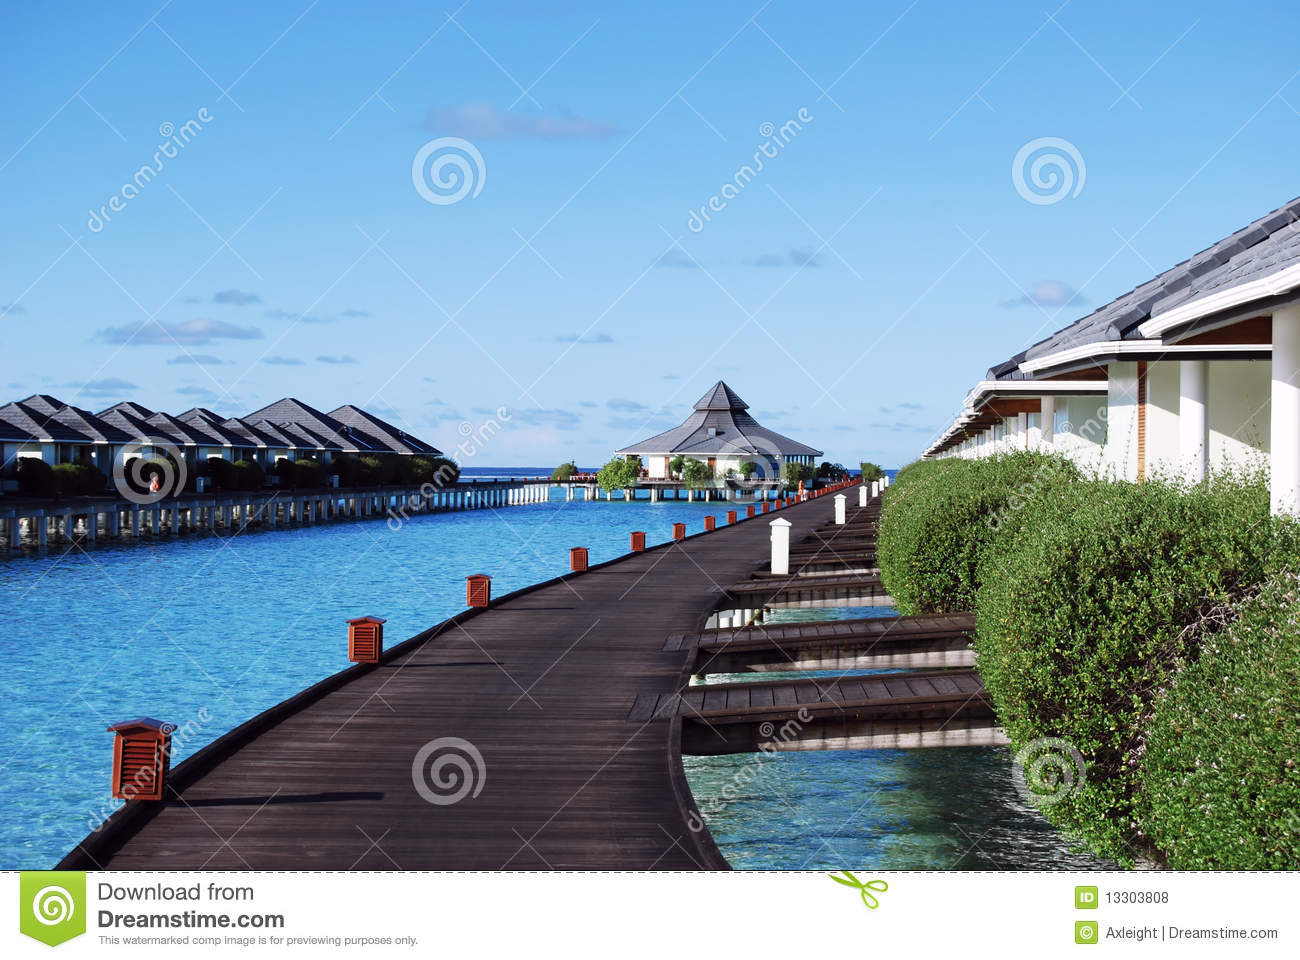 Water bungalows and blue ocean and sunny sky